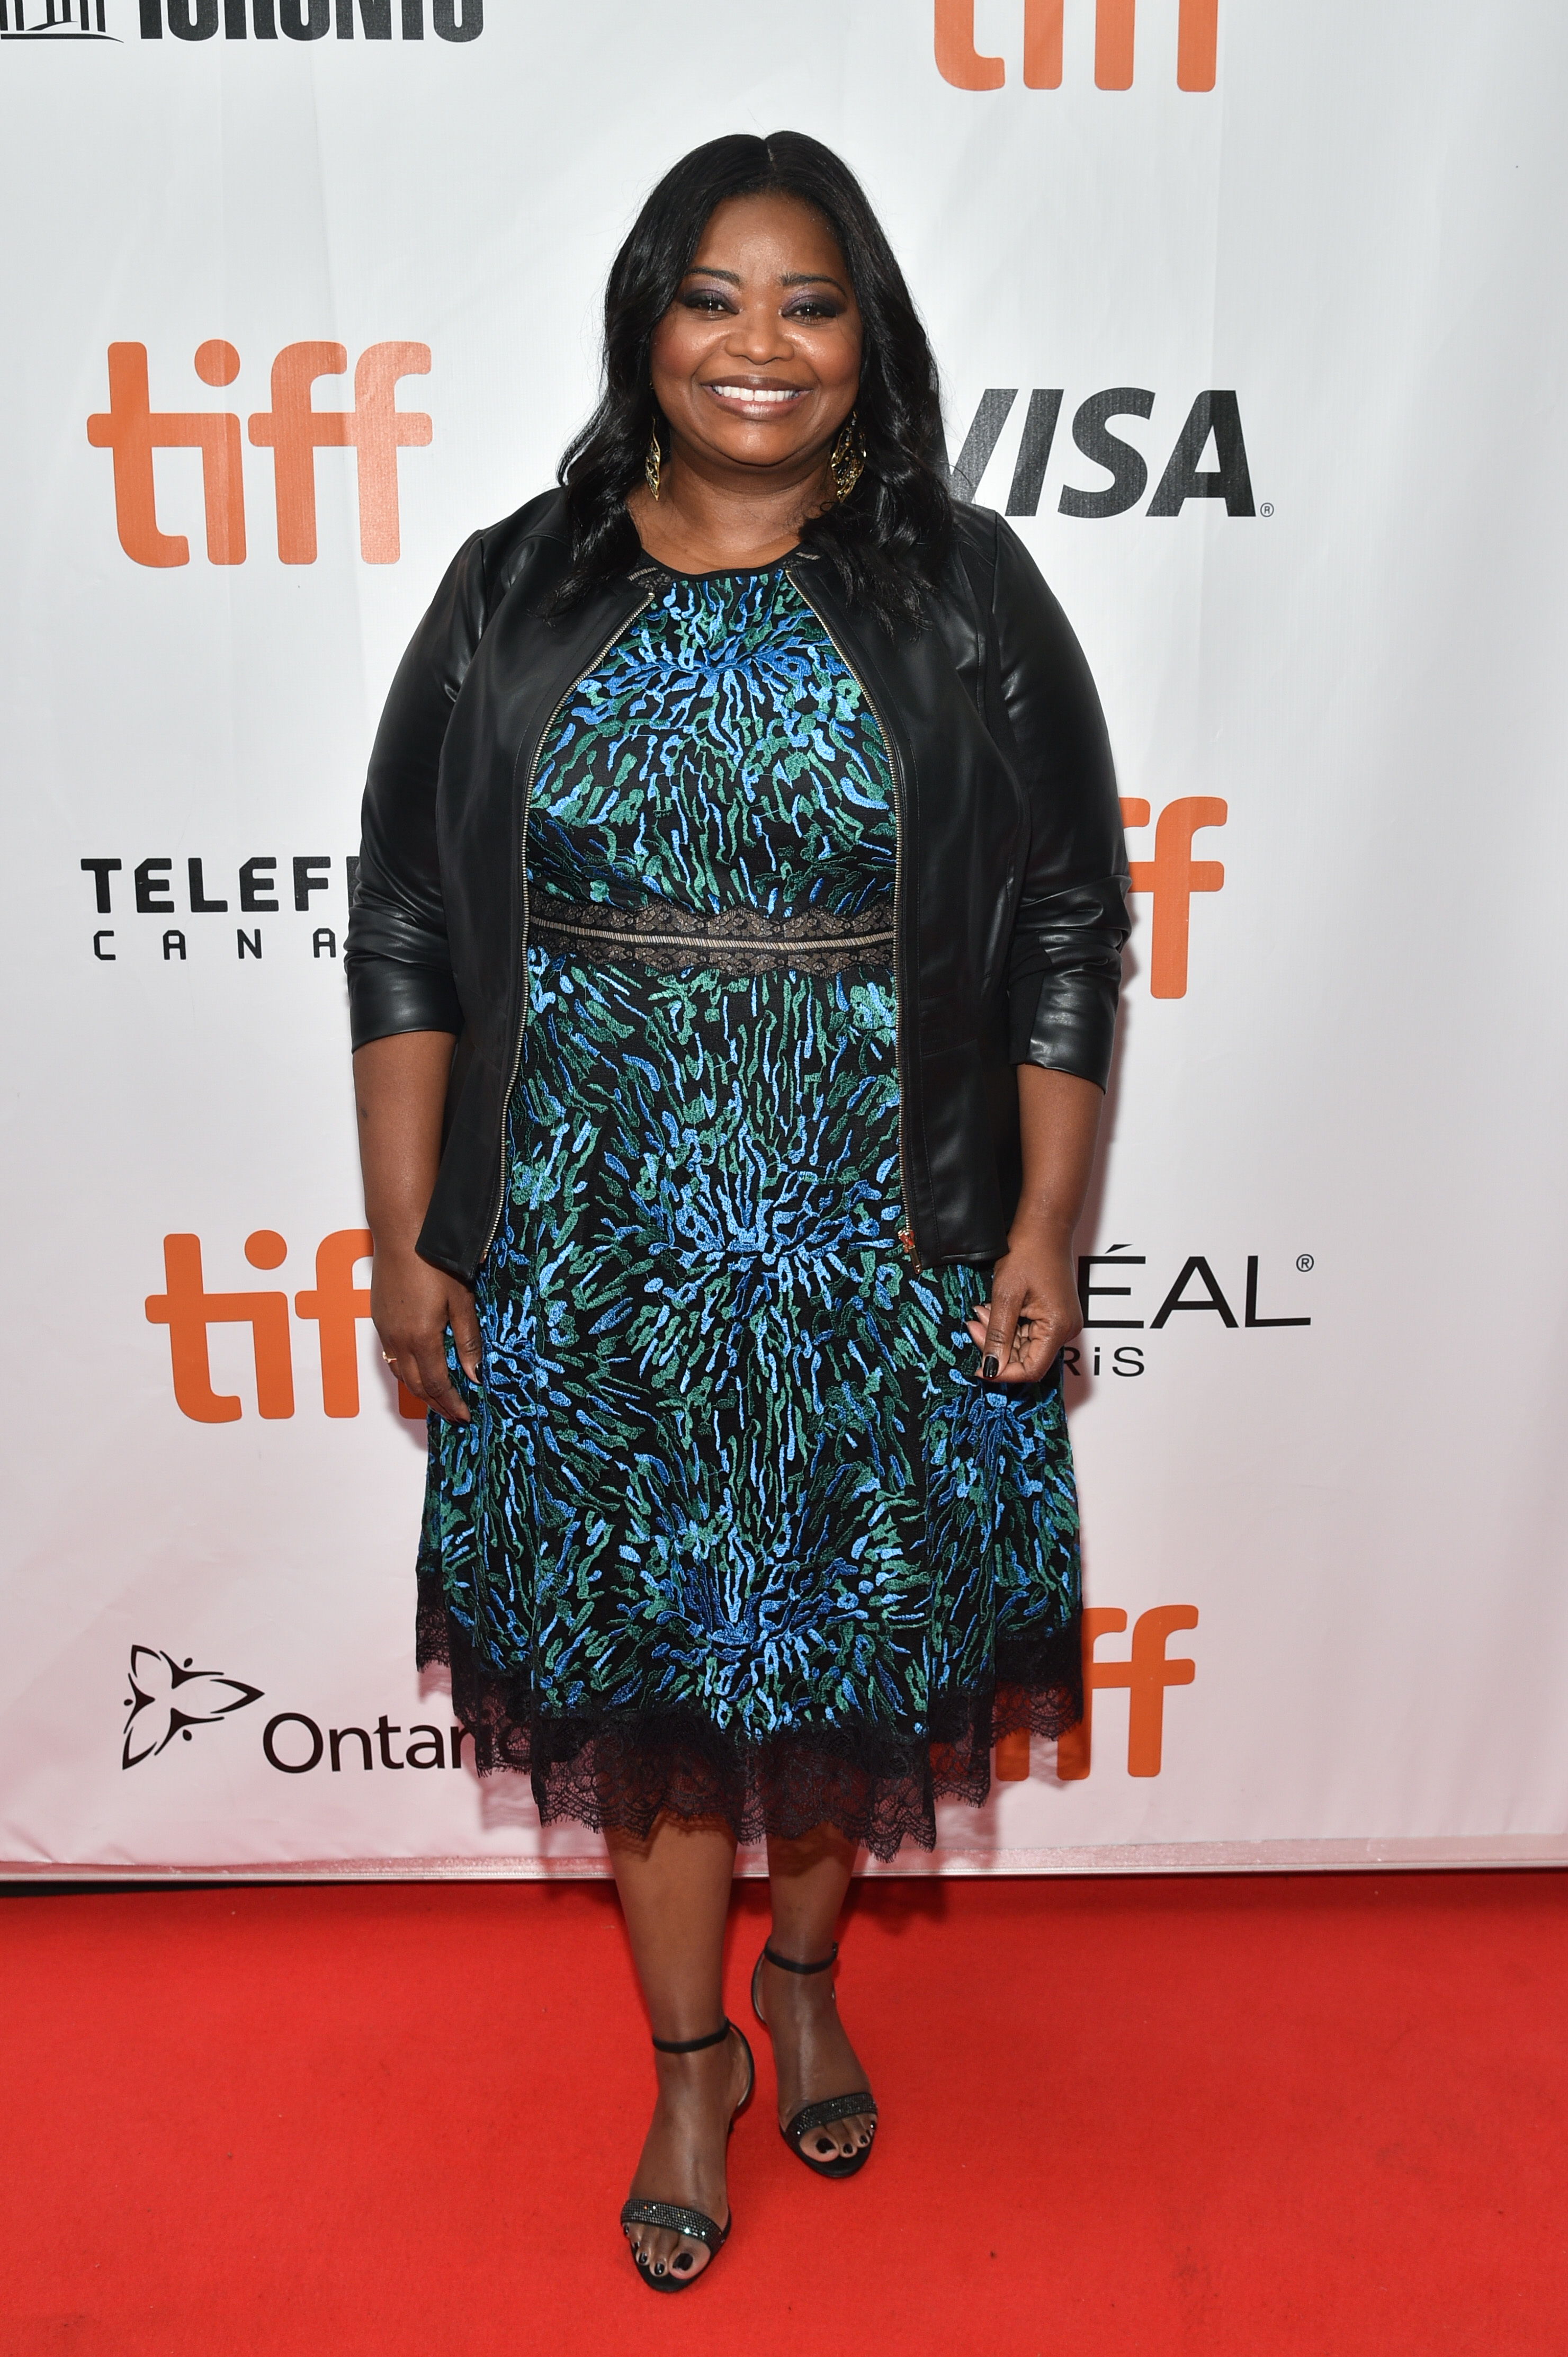 """Octavia Spencer attends the """"Green Book"""" premiere at the Toronto International Film Festival on Sept. 11, 2018."""